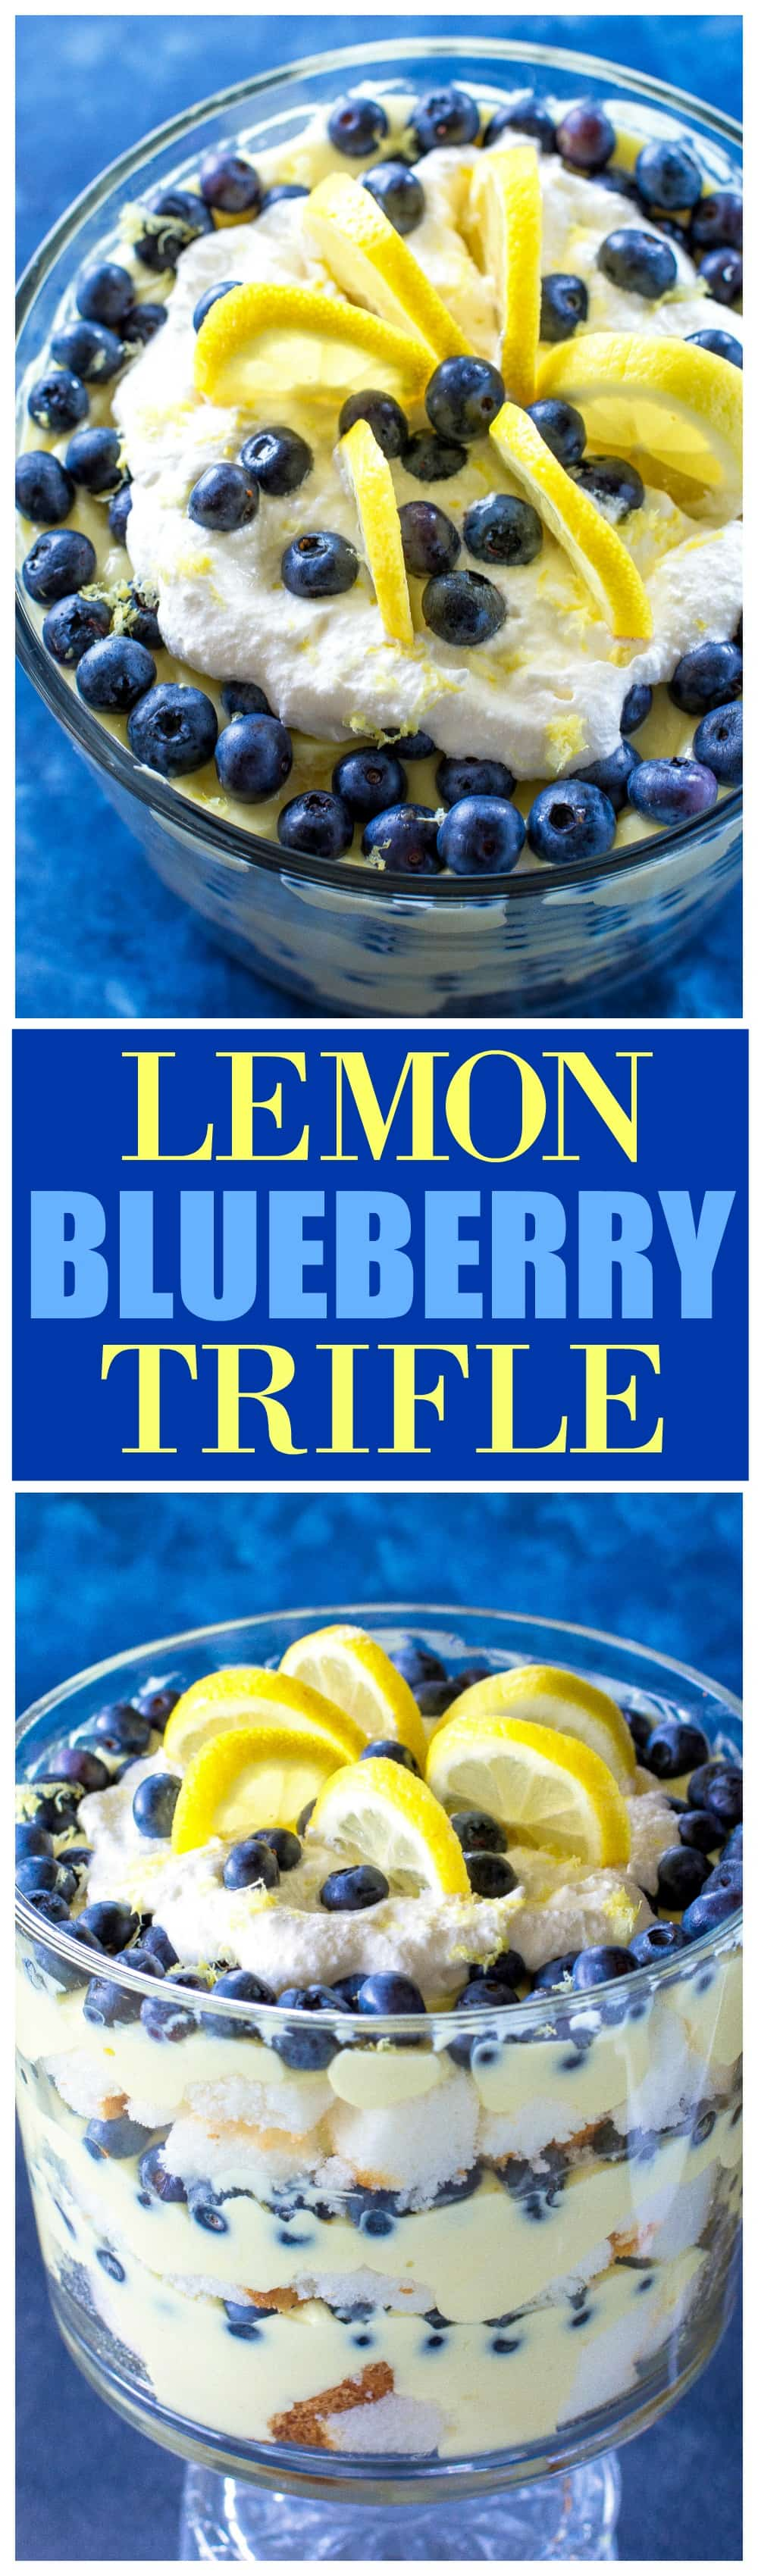 This Lemon Blueberry Trifle is layers of angel food cake, lemon pudding, and blueberries. A crowd pleasing dessert! #ad the-girl-who-ate-everything.com #PromisedLandDairy #FarFromOrdinaryMilk